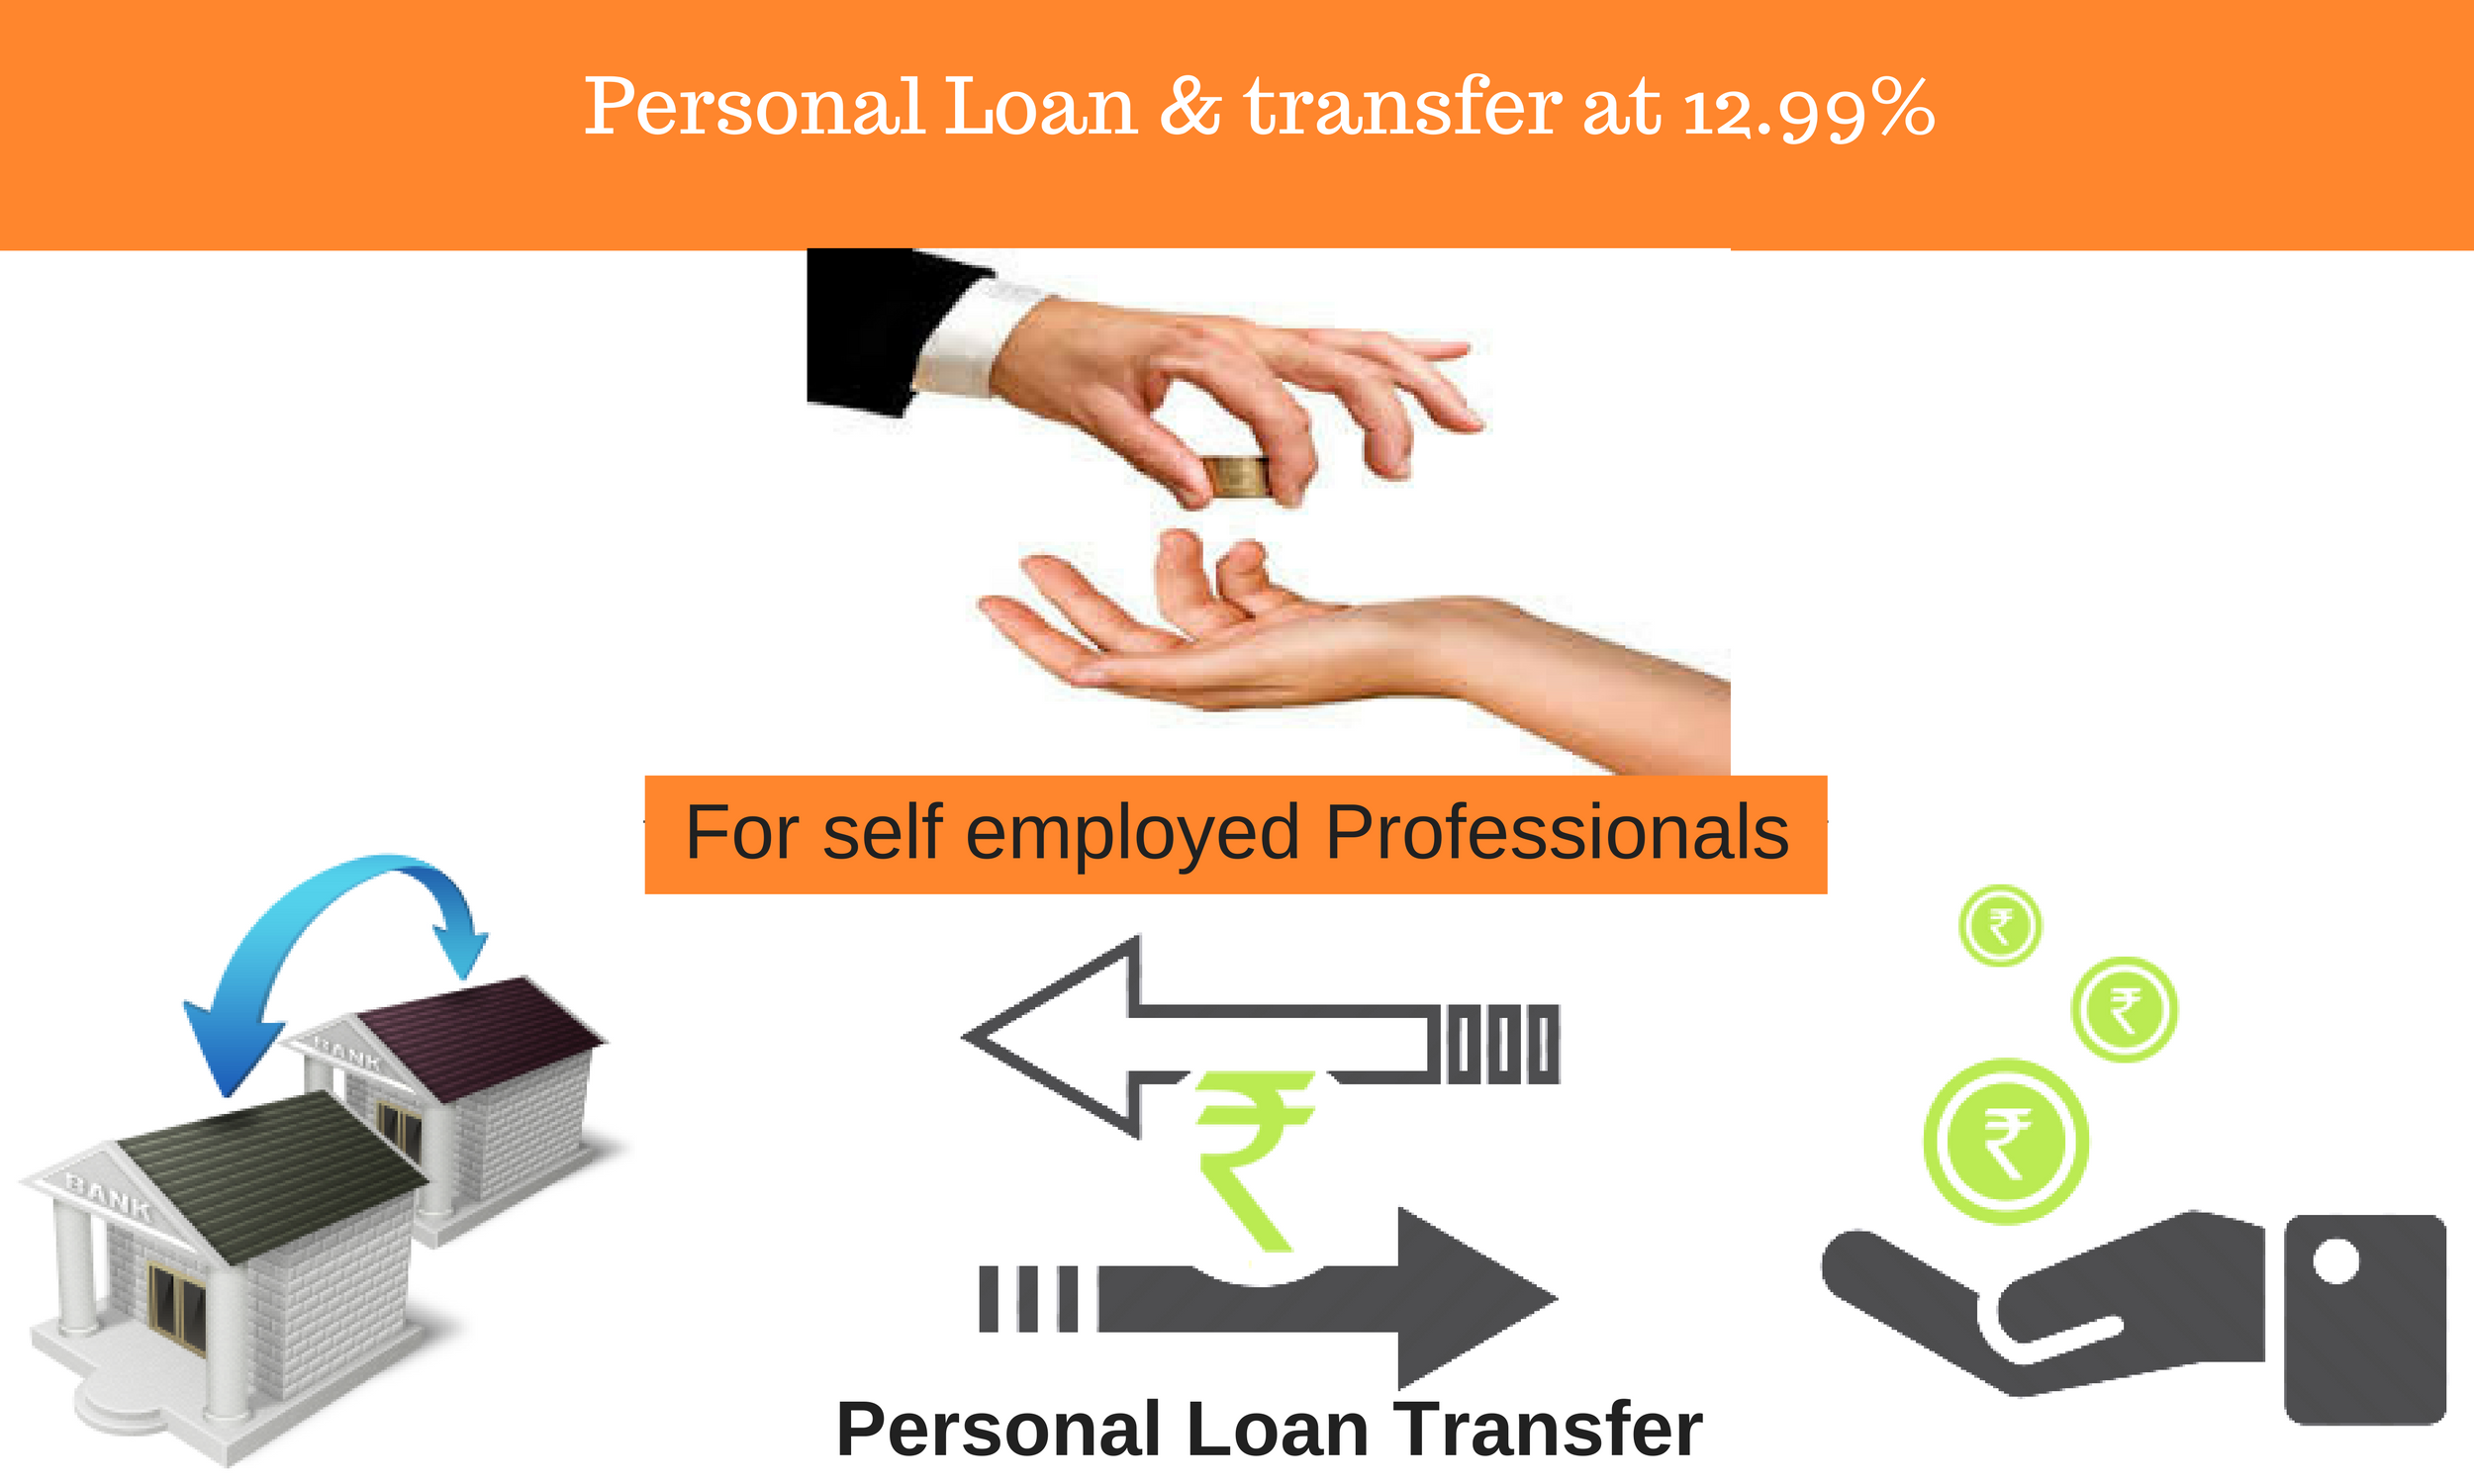 PL &PL transfer at 12.99% for Self Employed Professionals